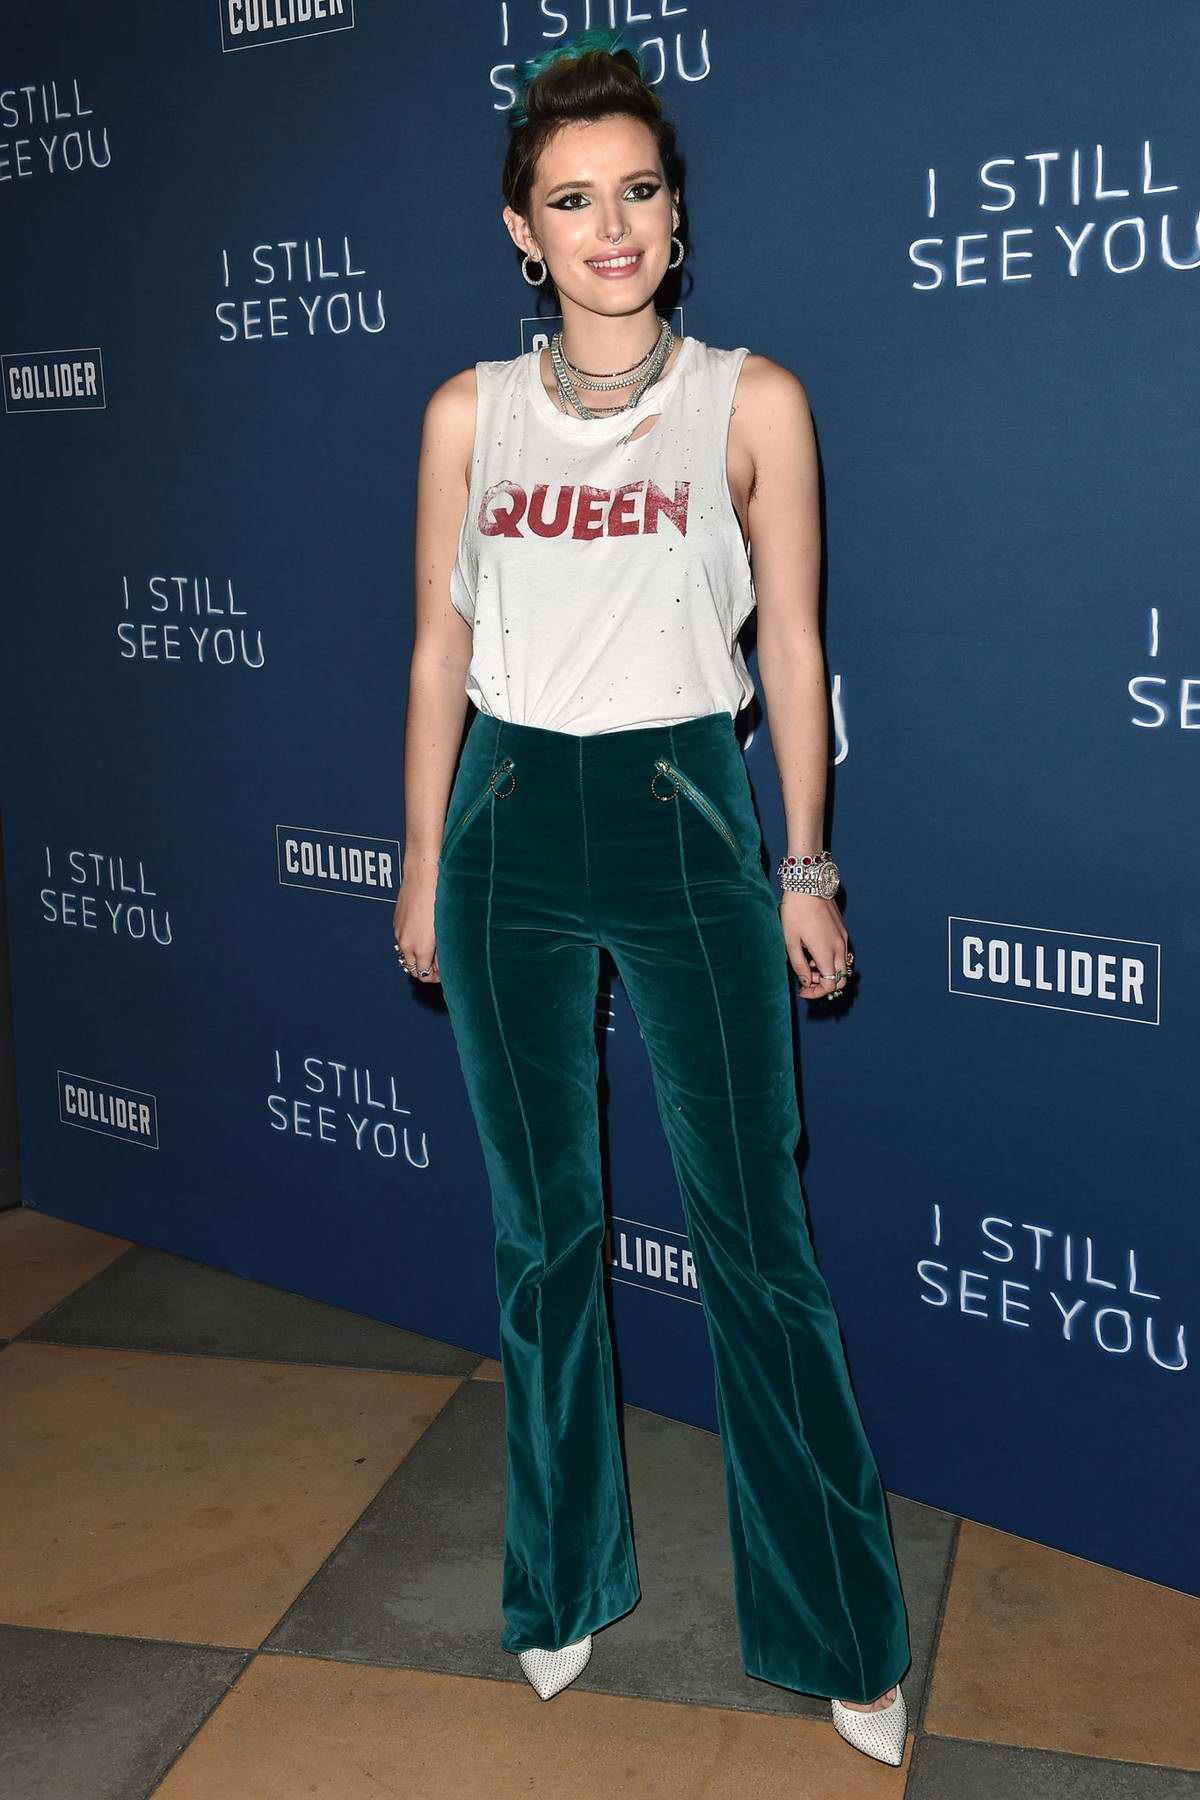 Bella Thorne attends the special screening of 'I Still See You' in Sherman Oaks, Los Angeles